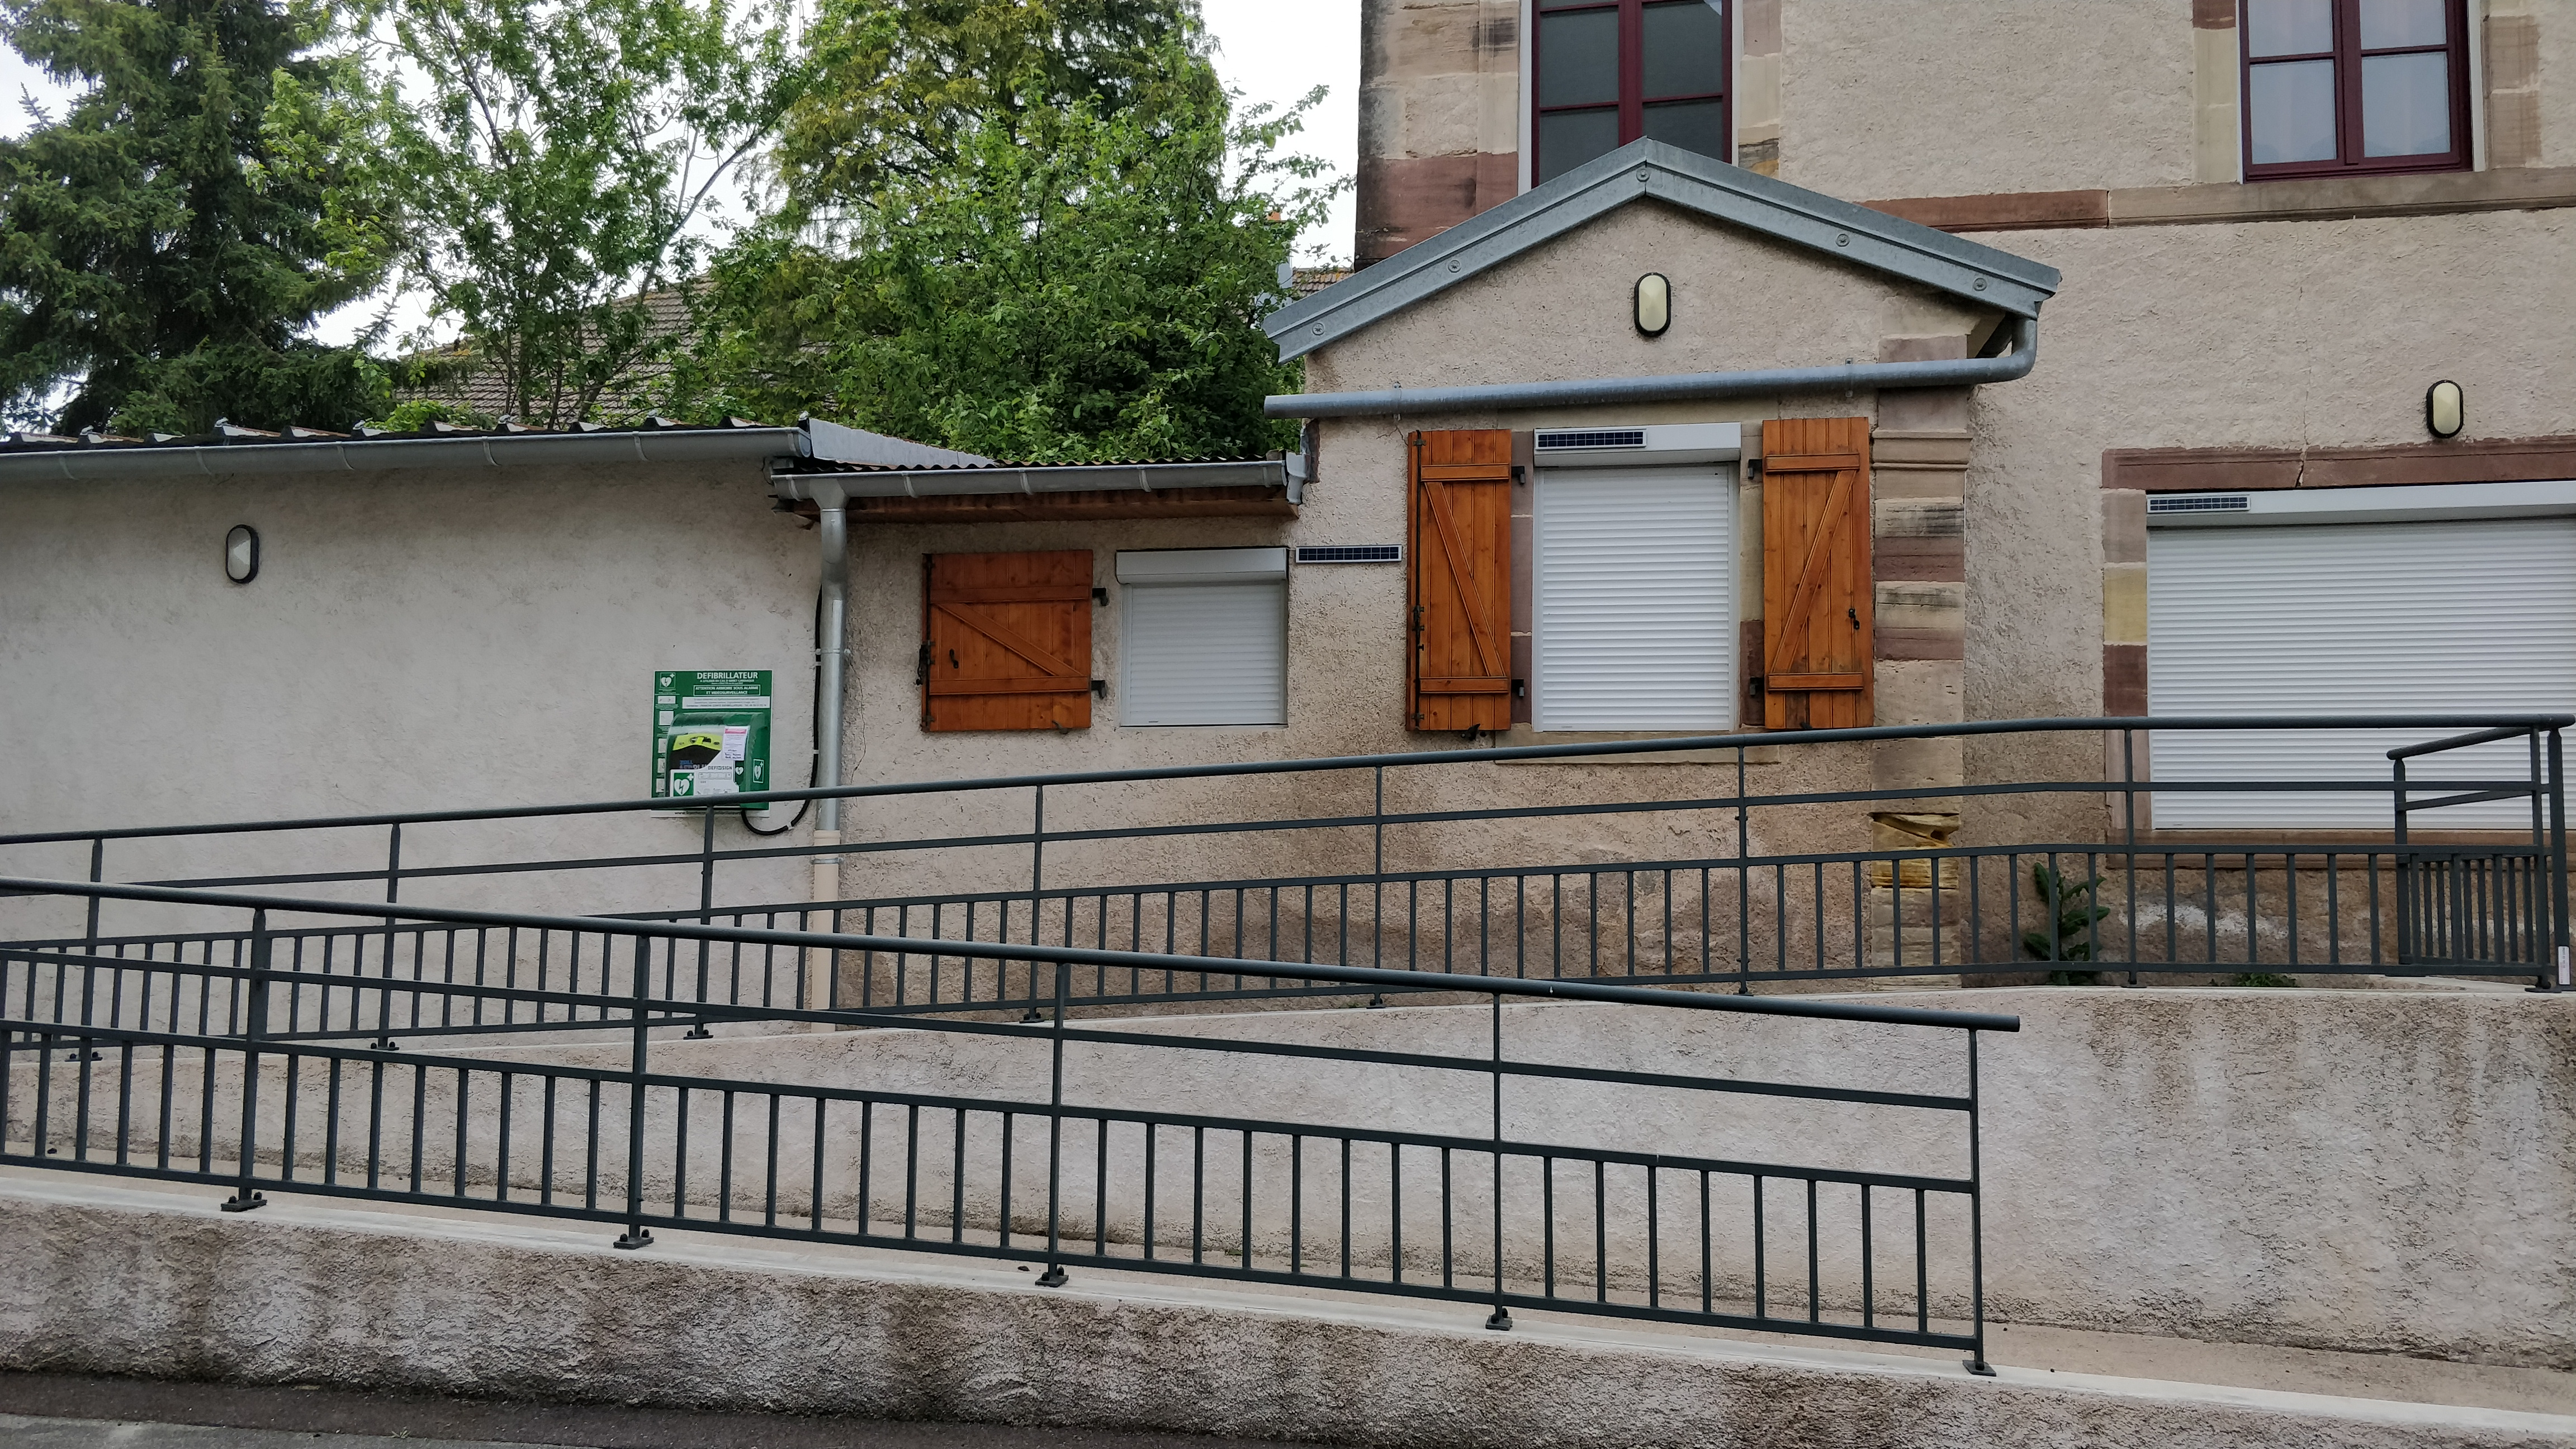 https://www.villers-les-luxeuil.com/projets/villers/files/images/2021_Mairie/Divers/Defib_mairie.jpg